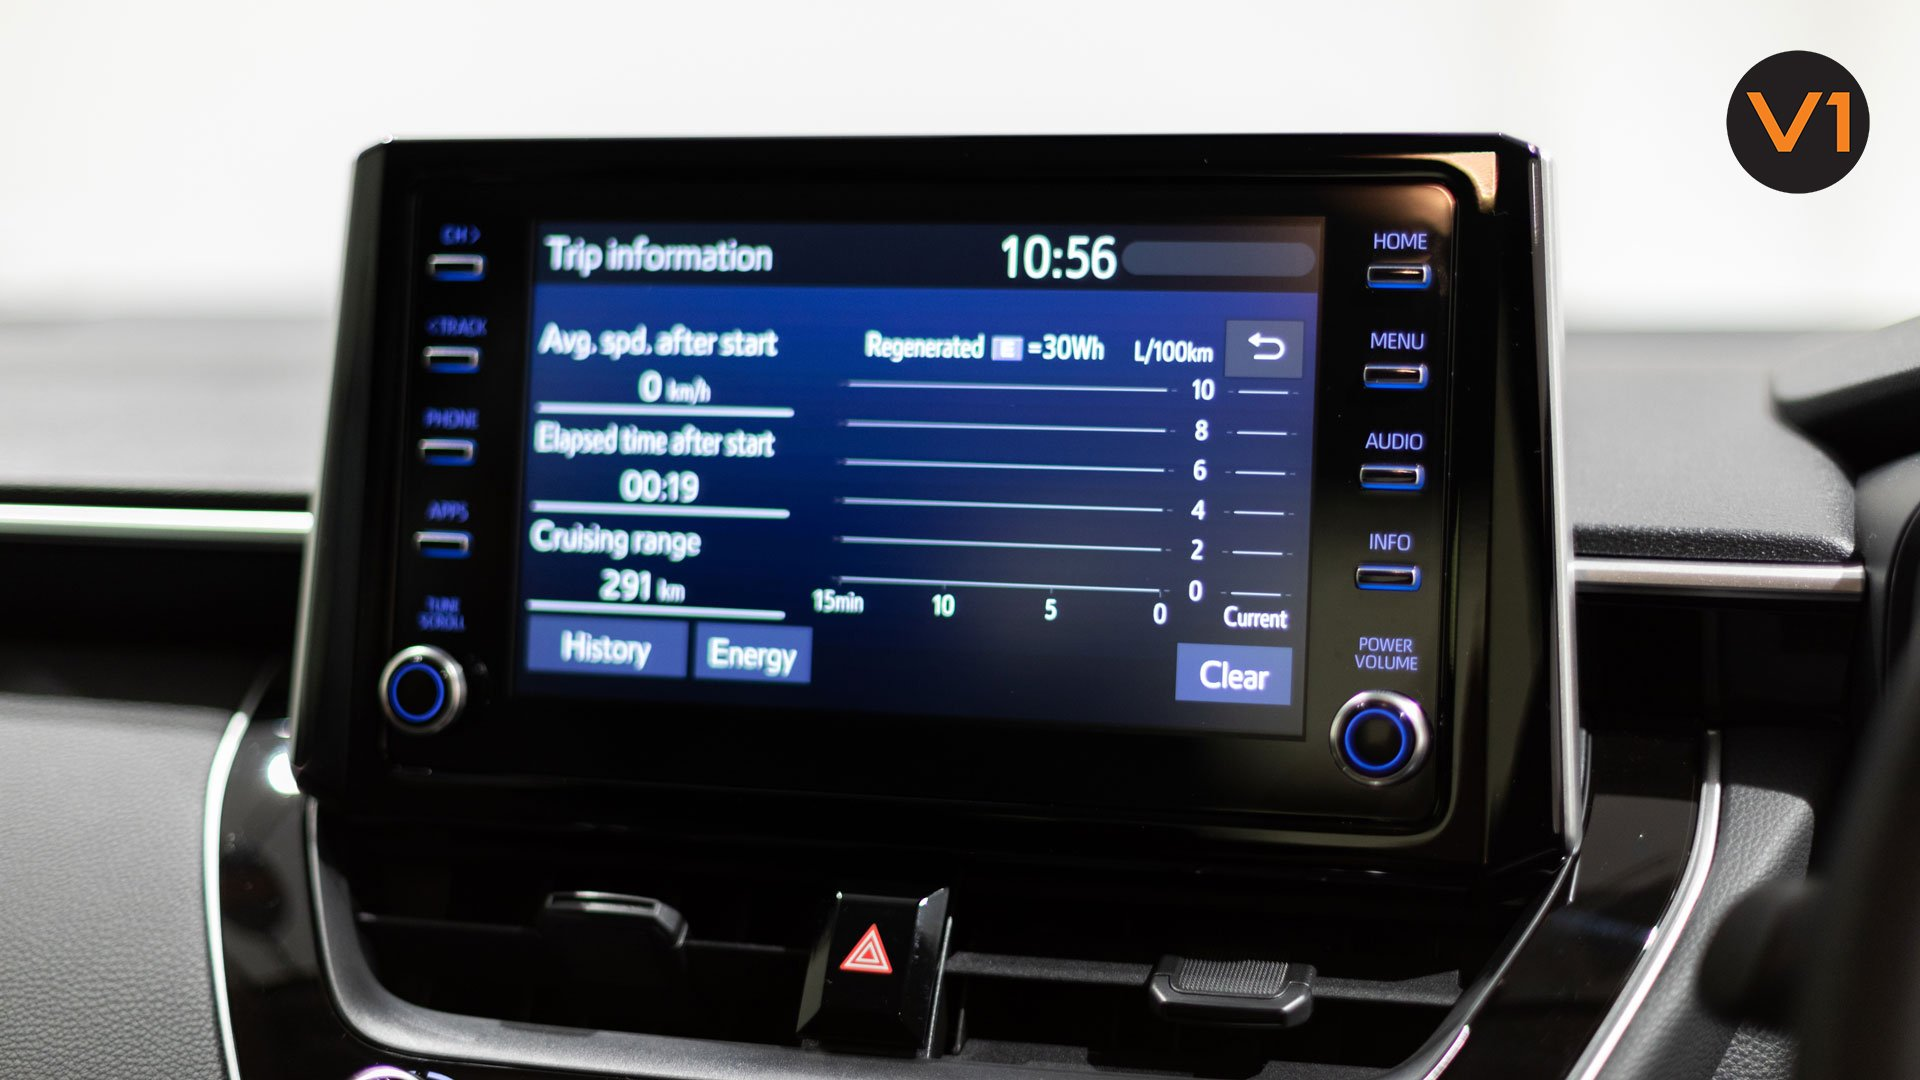 Feature Spotlight: 8-inch colour touchscreen display